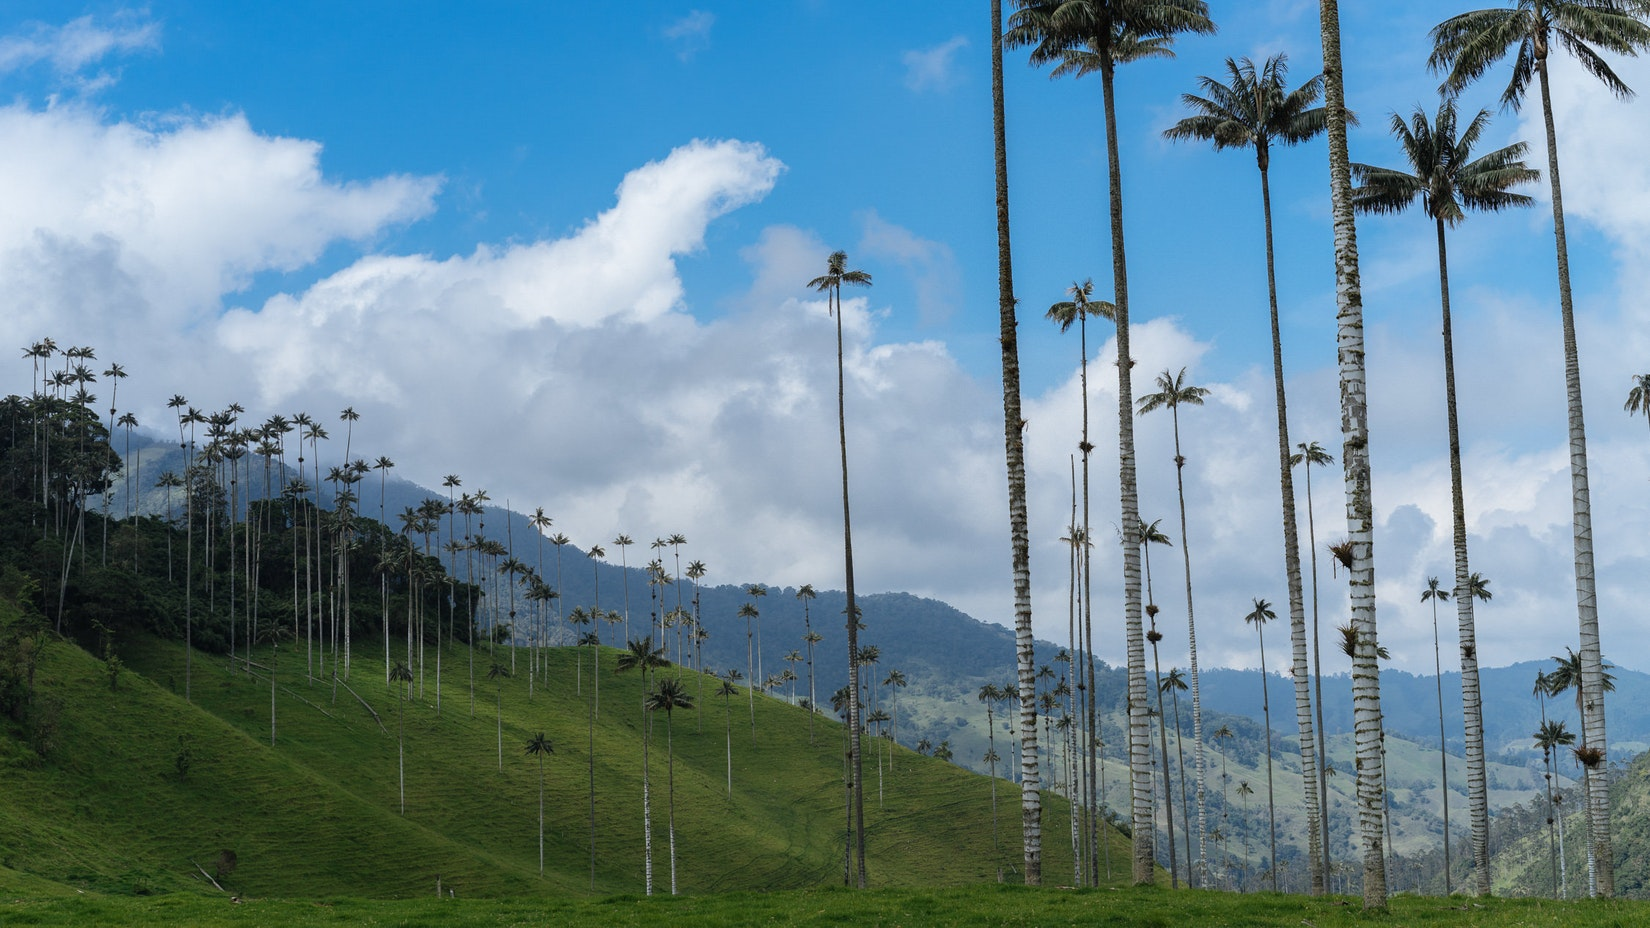 Tall palm trees in Salento, Colombia